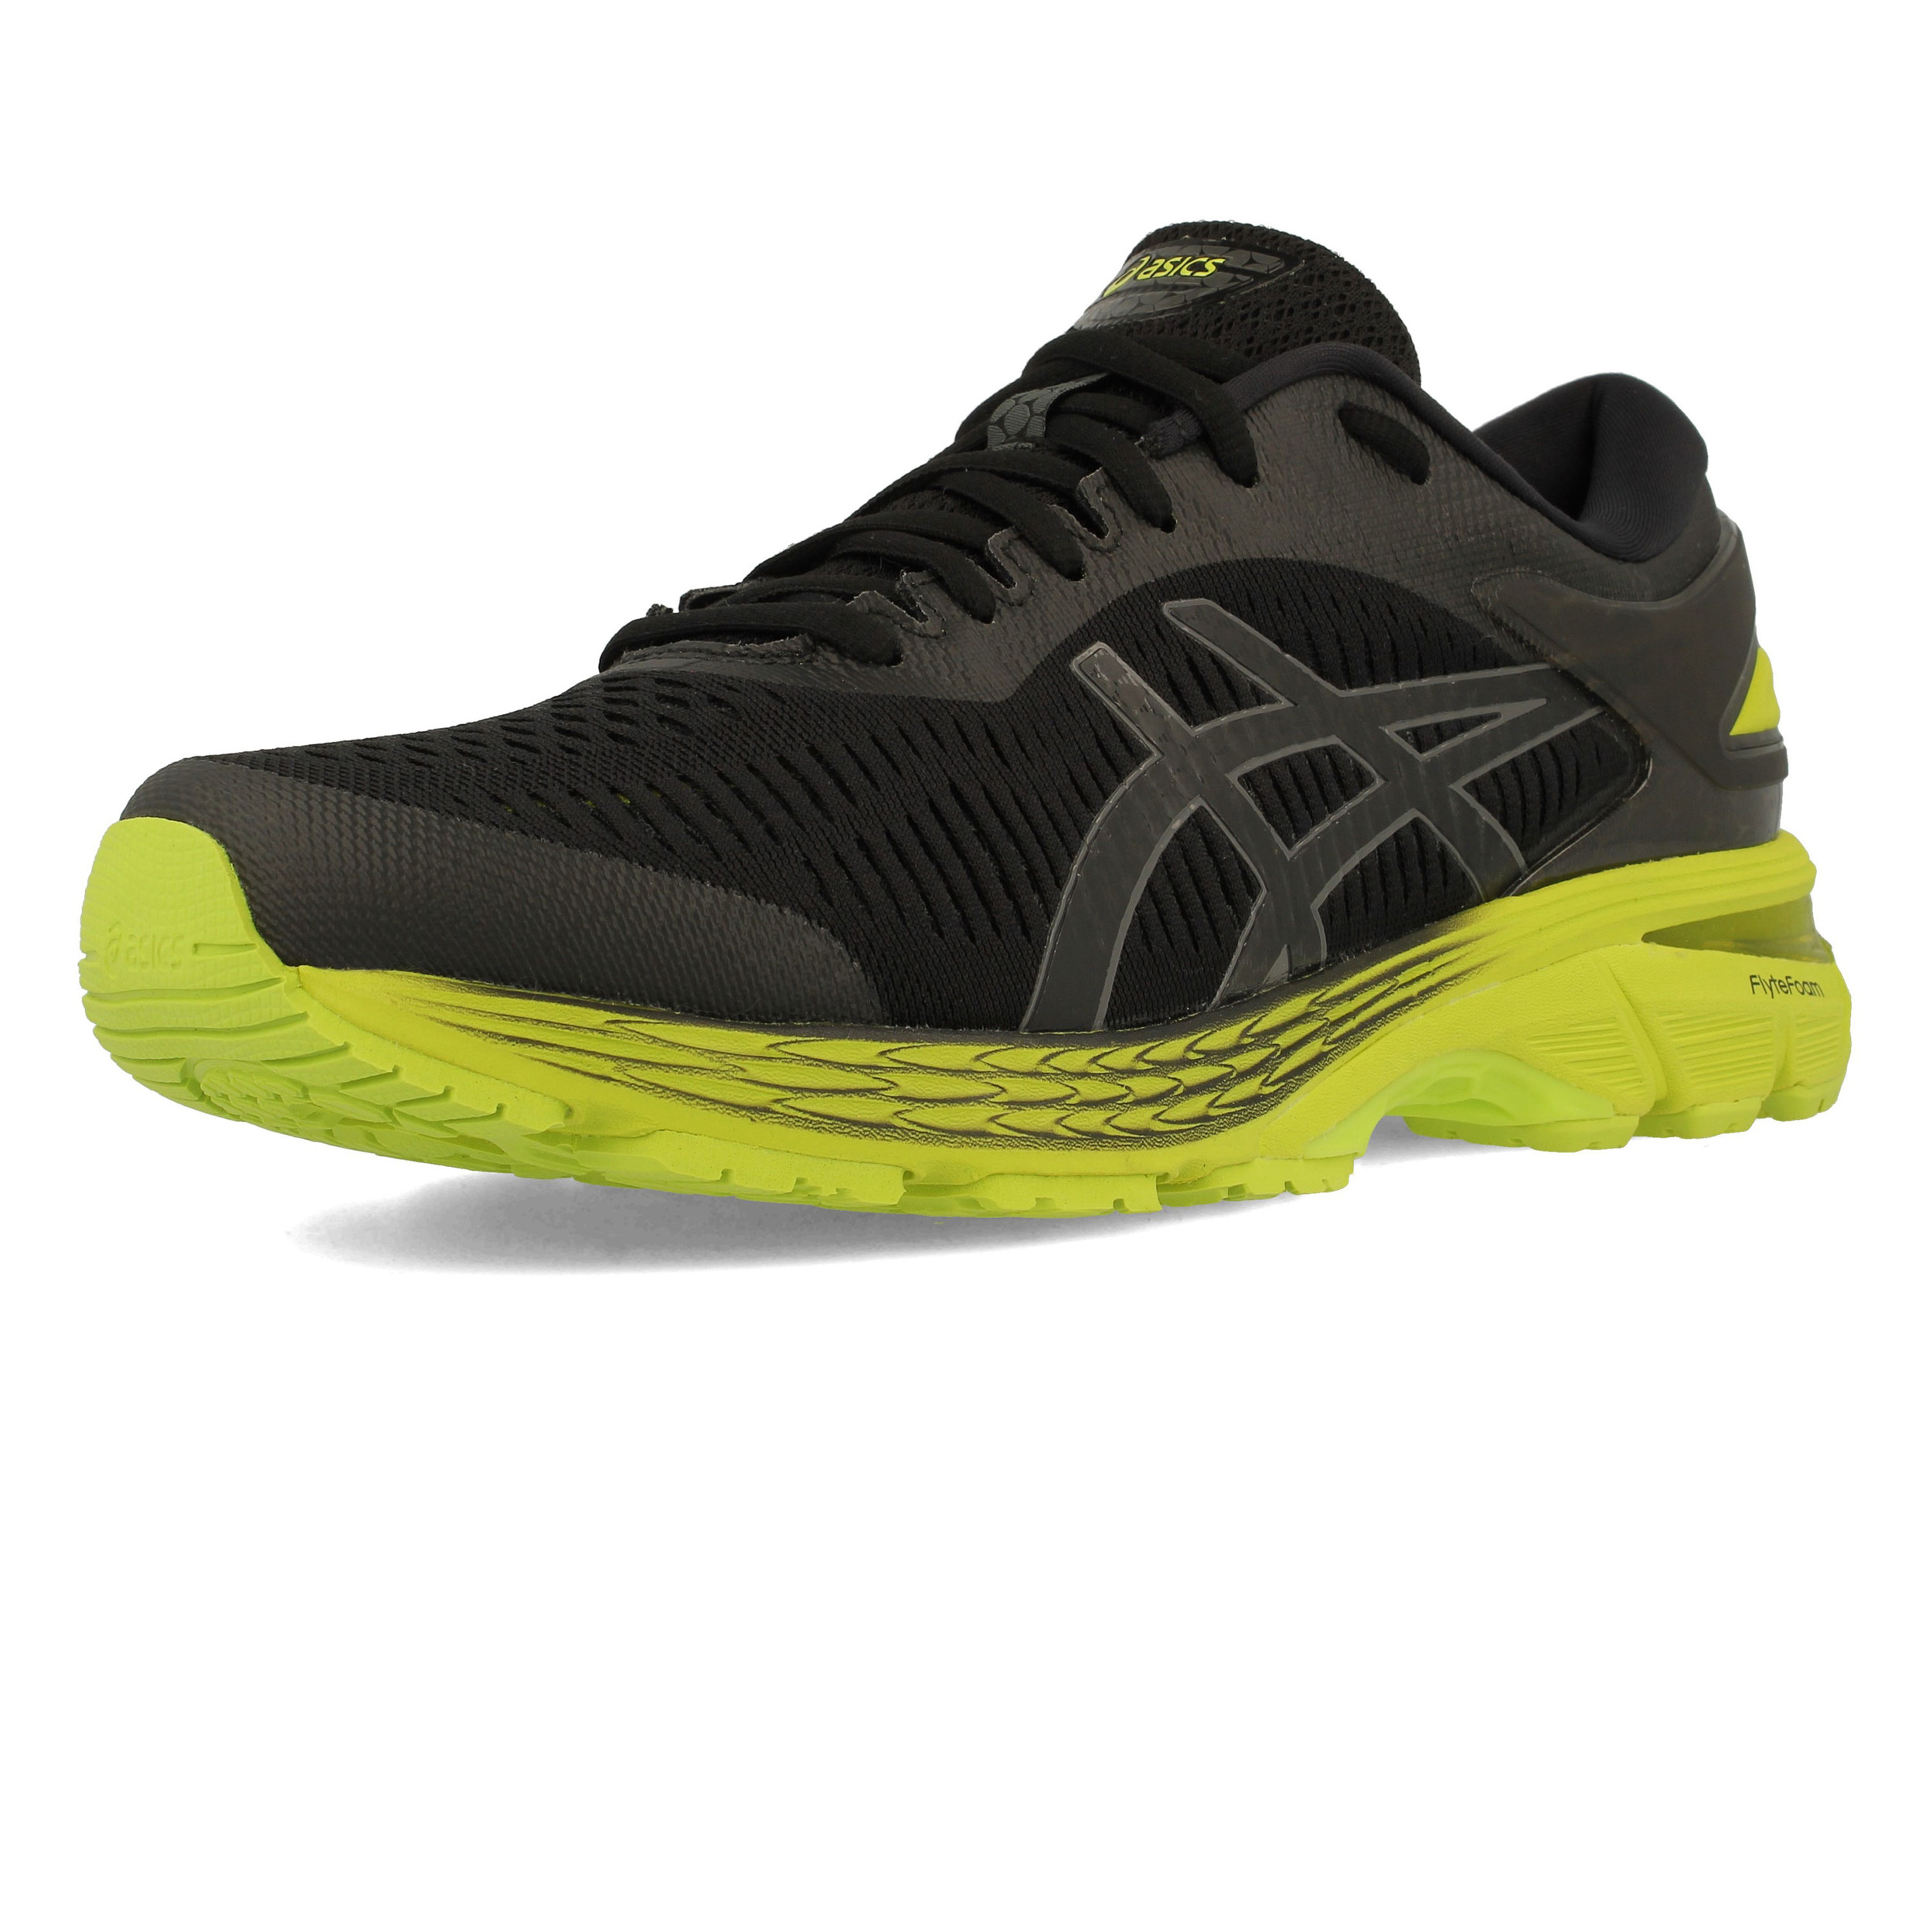 pretty nice 20f44 c2e72 Details about Asics Mens Gel-Kayano 25 Running Shoes Trainers Sneakers Black  Sports Breathable